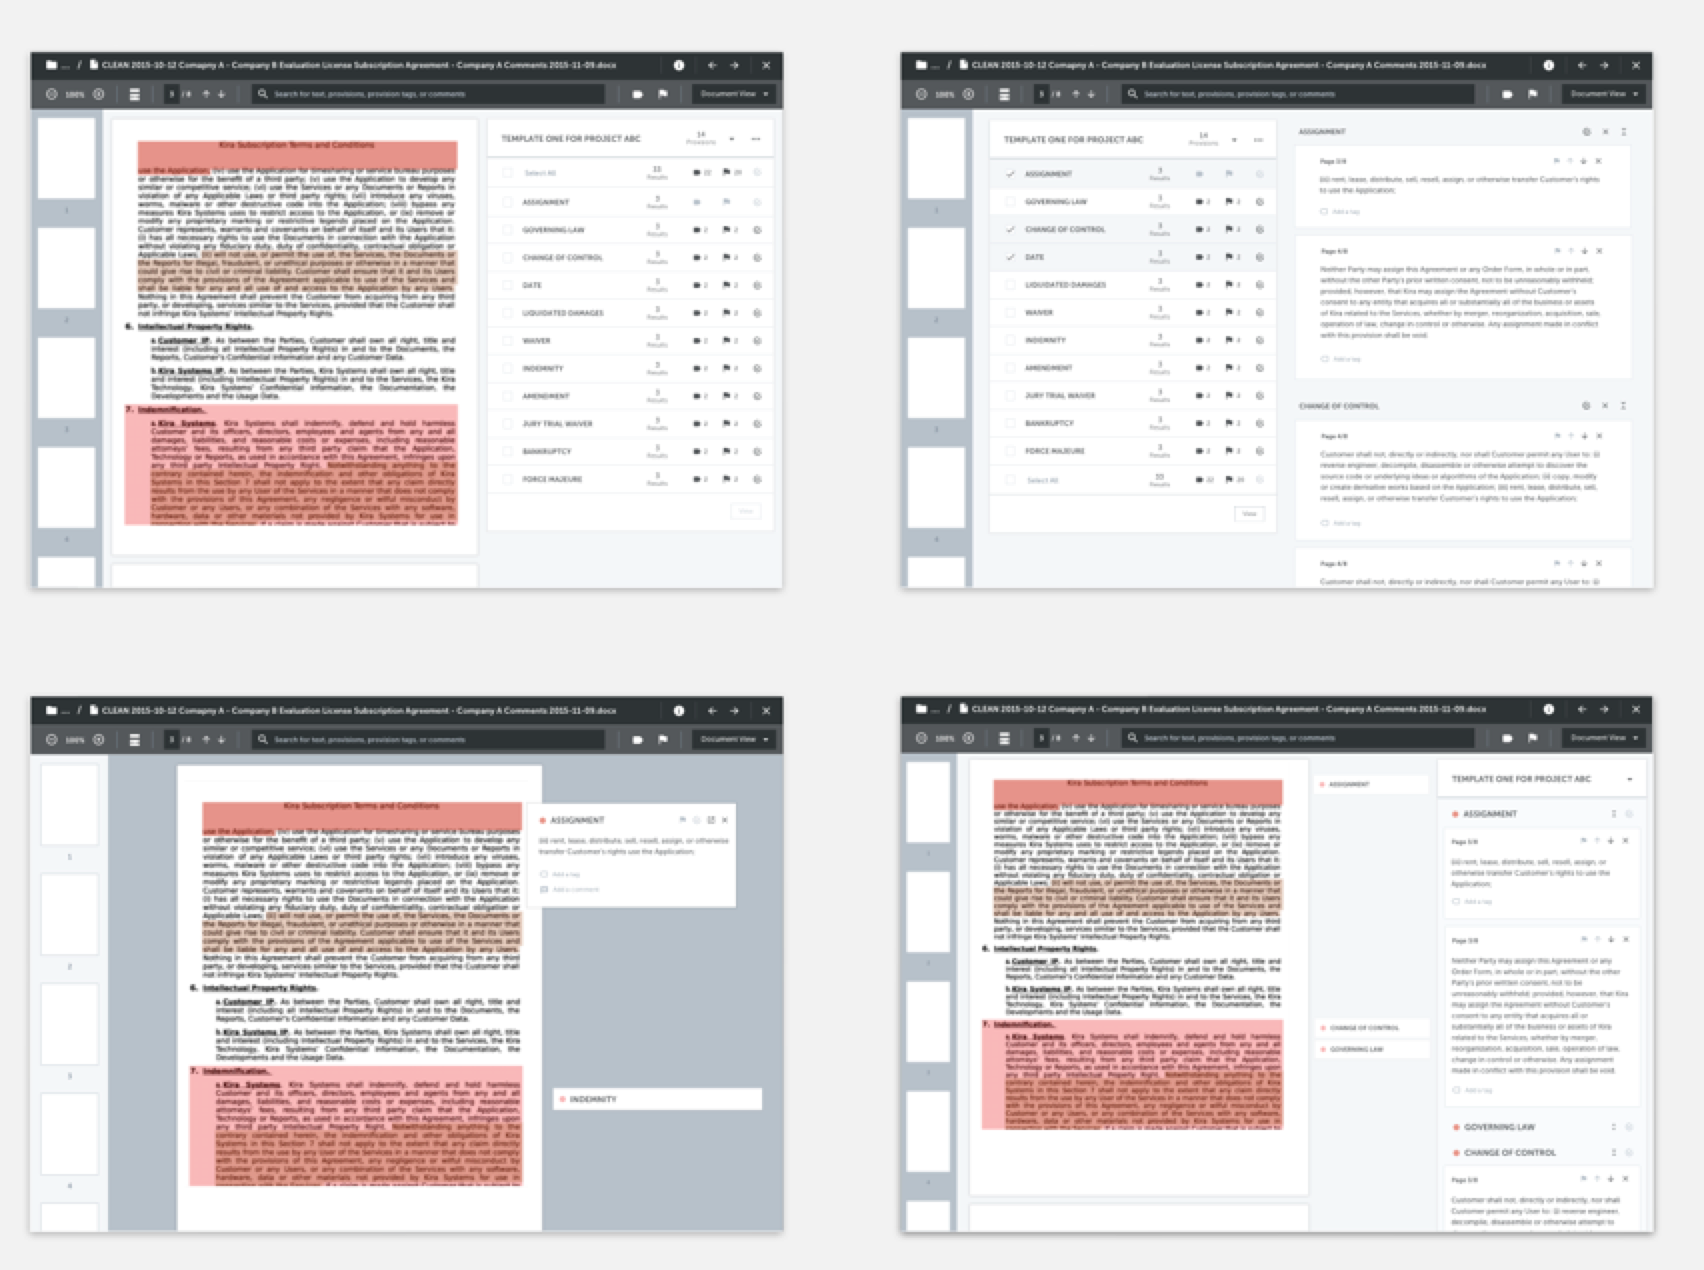 Some early mockups exploring different view modes in Document Viewer including full-page document view and summary view.